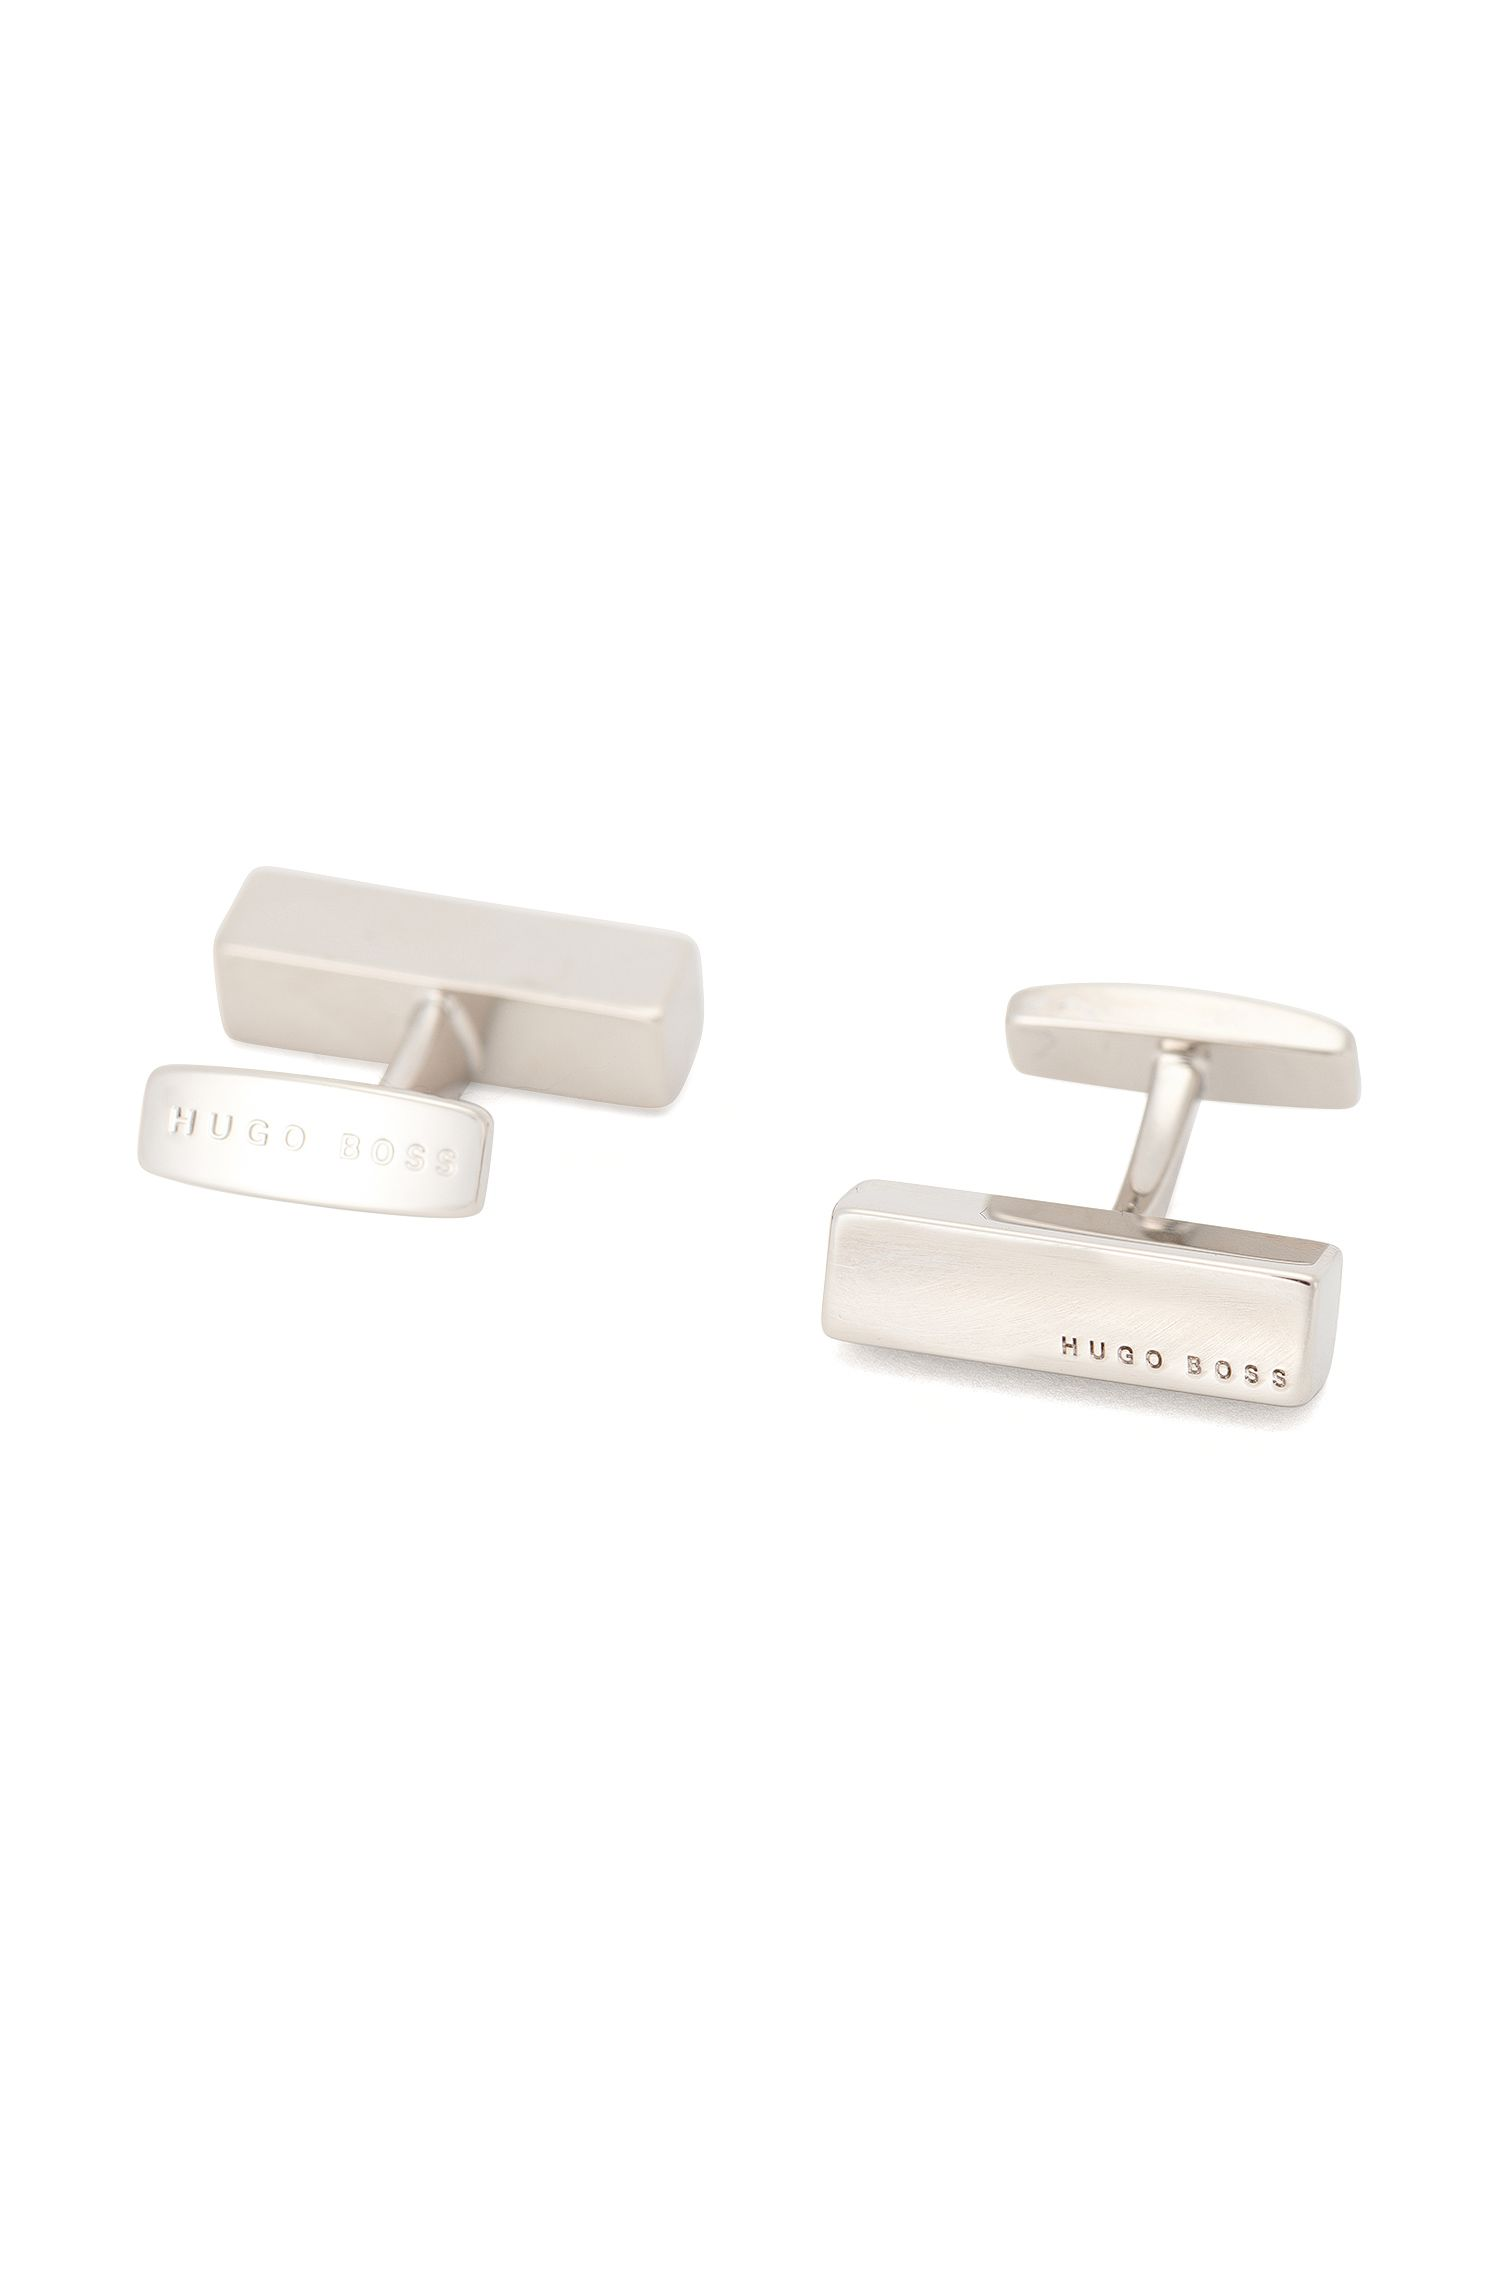 Bar-shaped cufflinks in polished metal